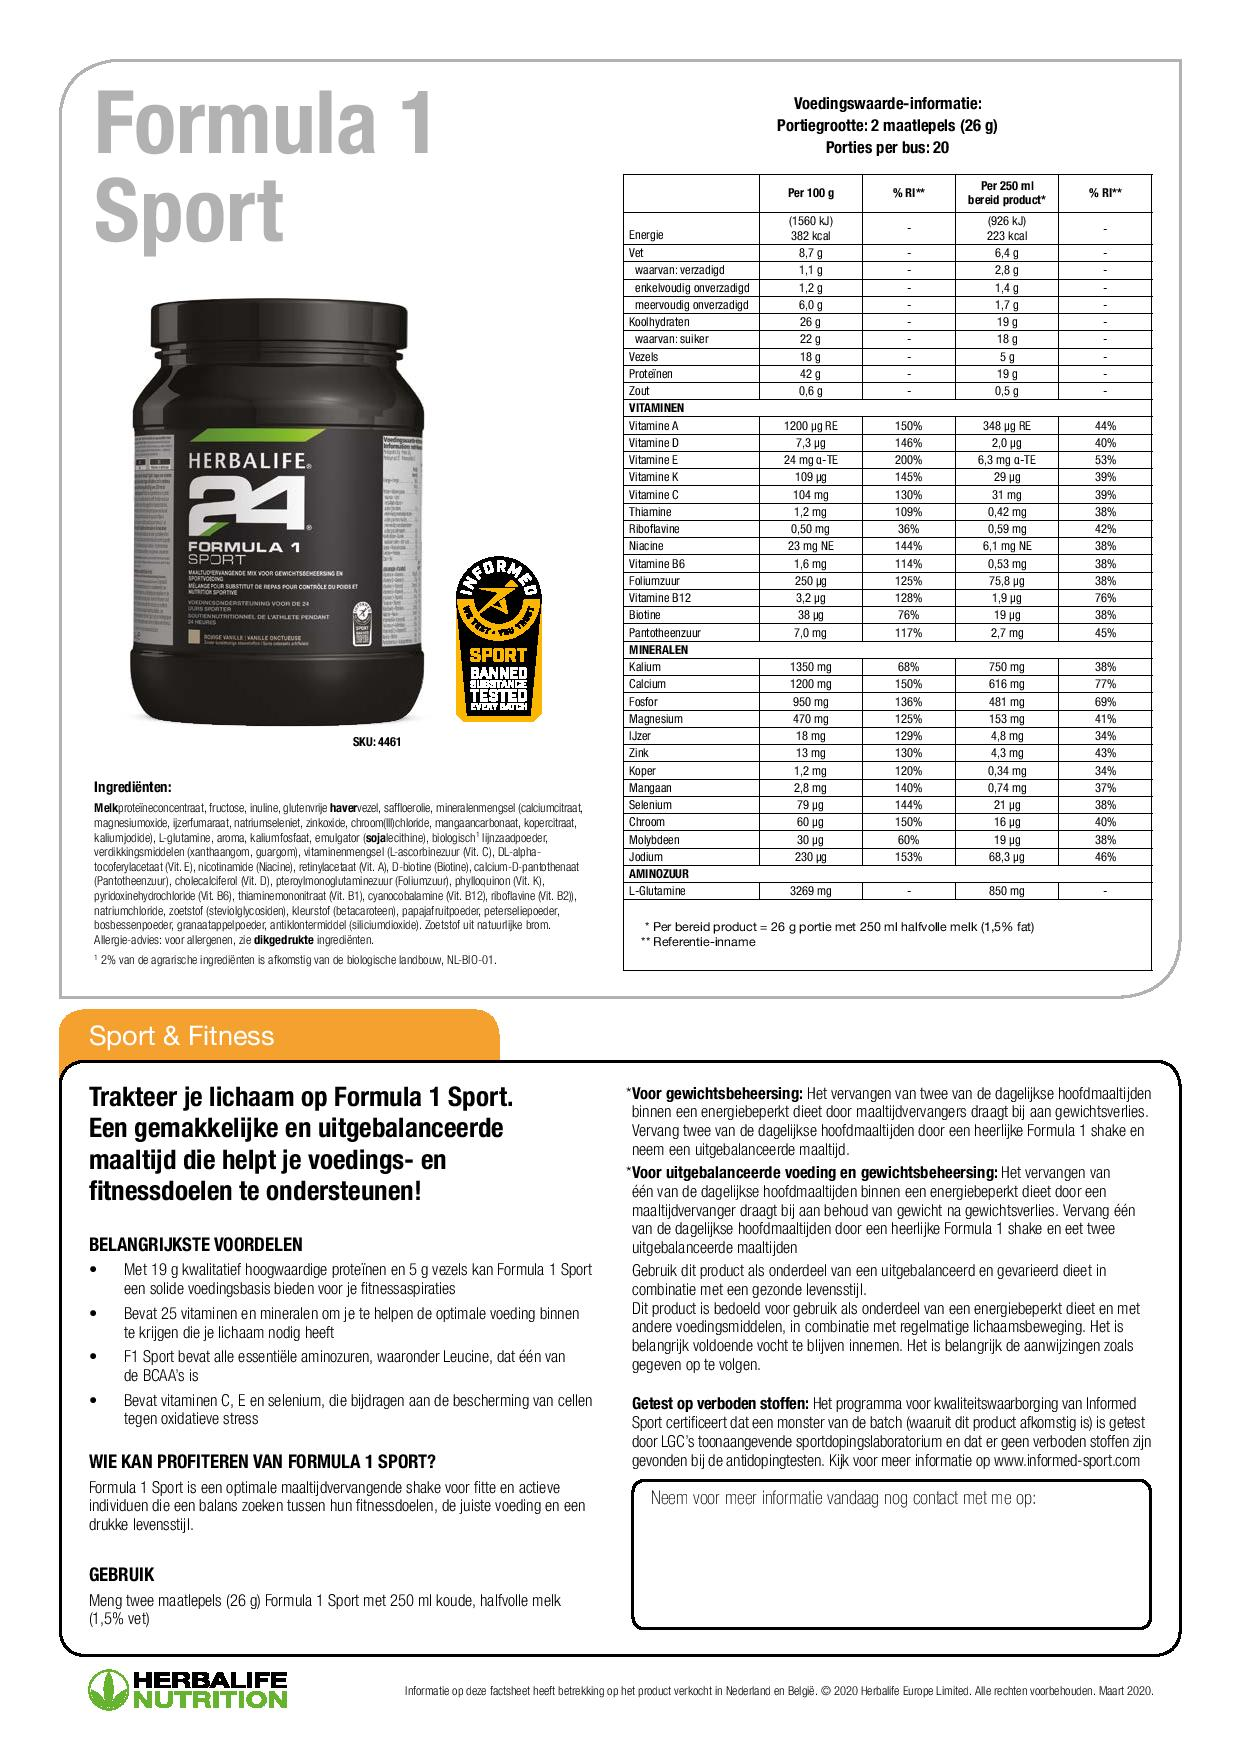 F1 Sport Ingredienten Herbalife